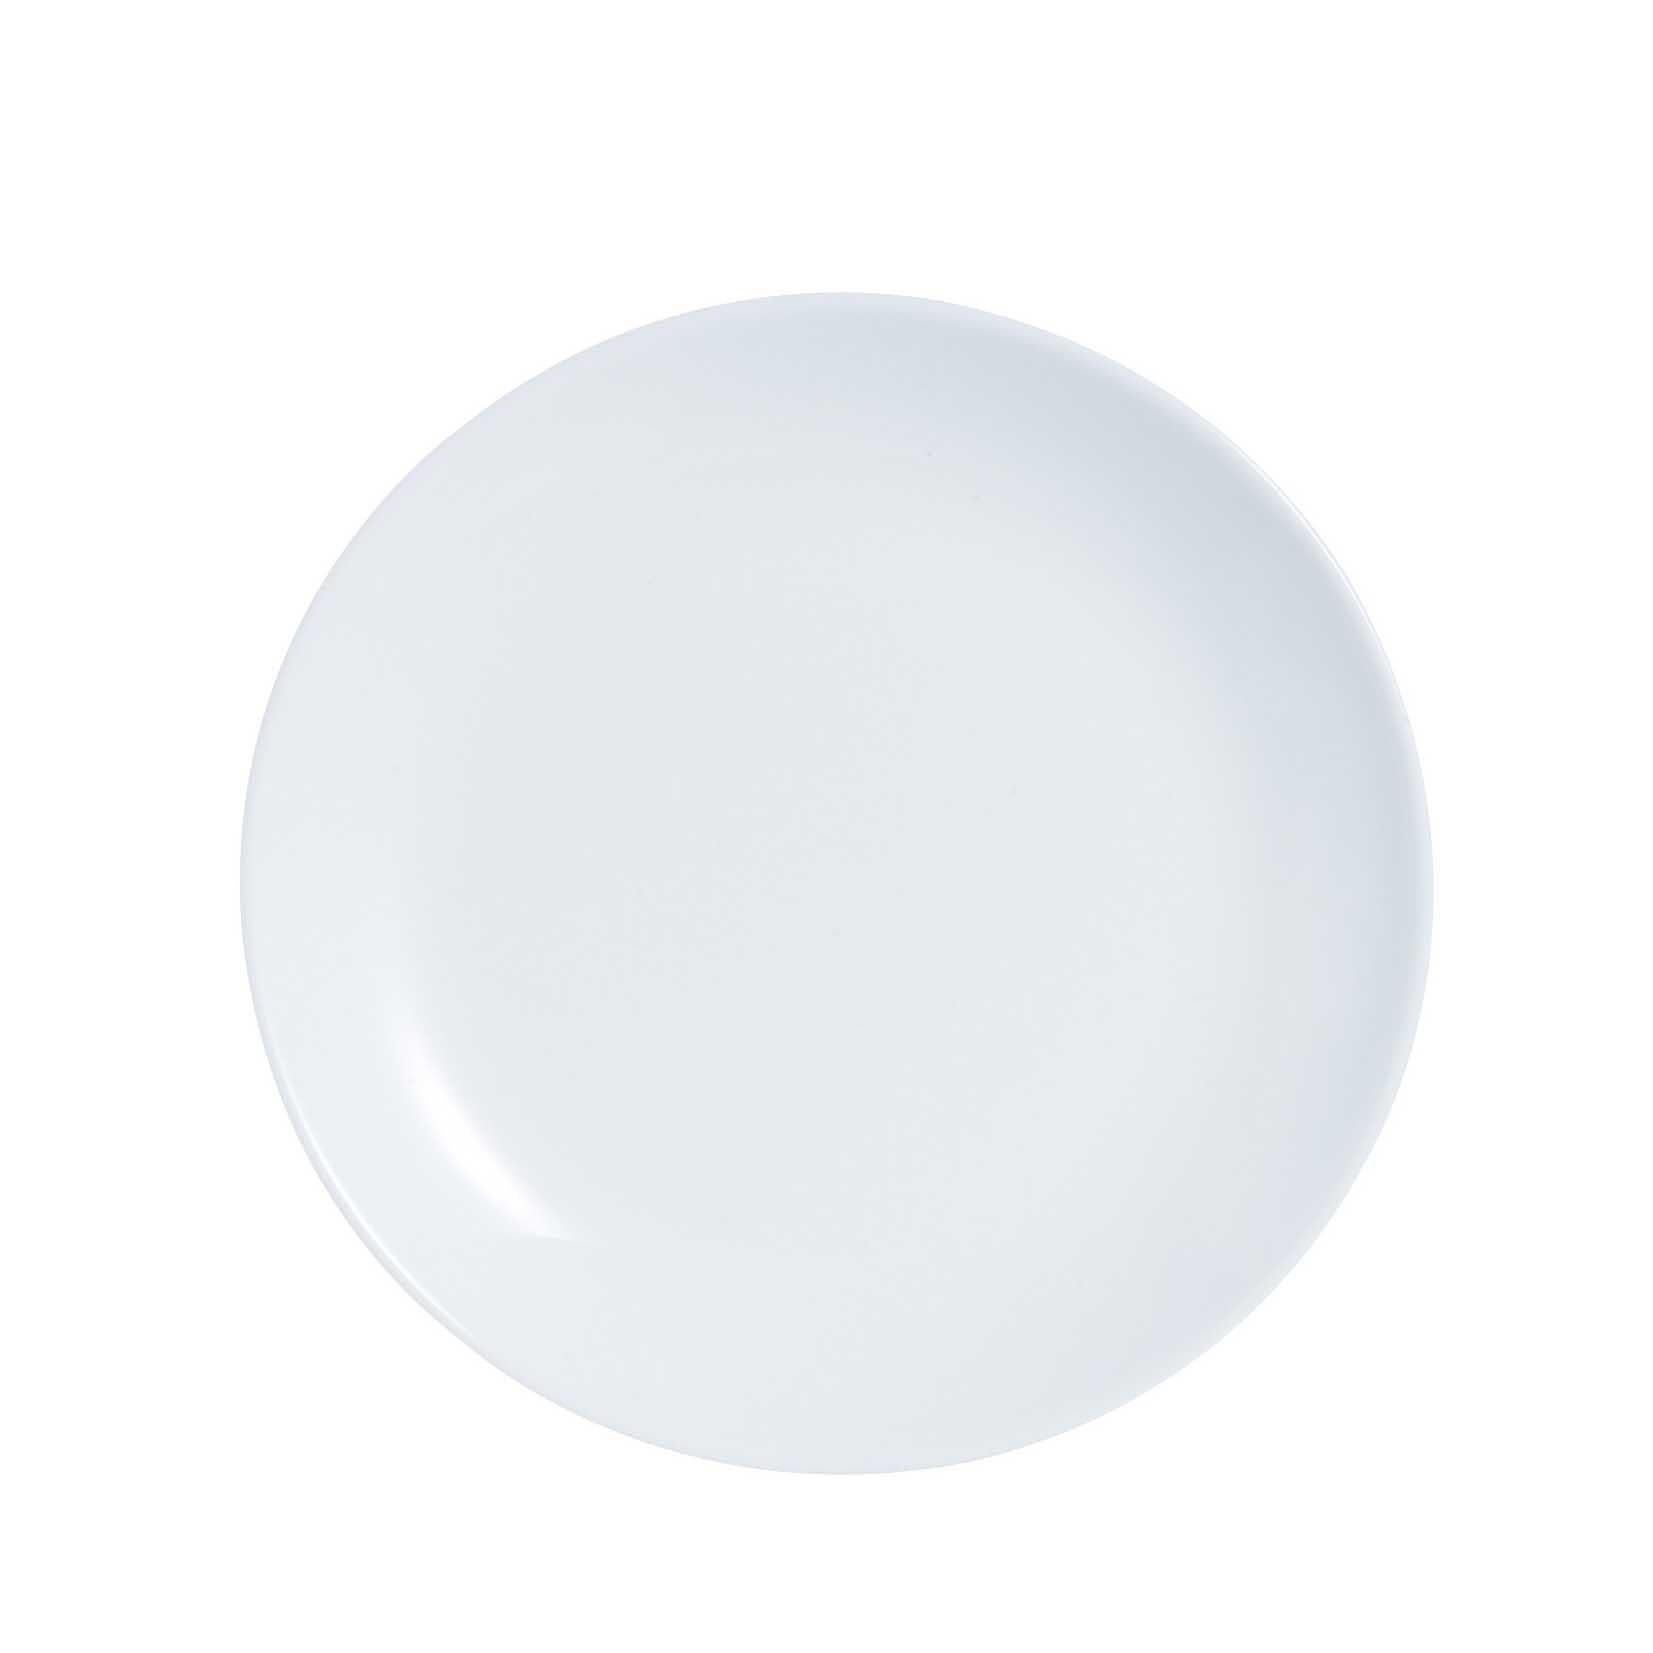 (24 PACK) CONSOL OPAL SIDE PLATE (190MM:D)